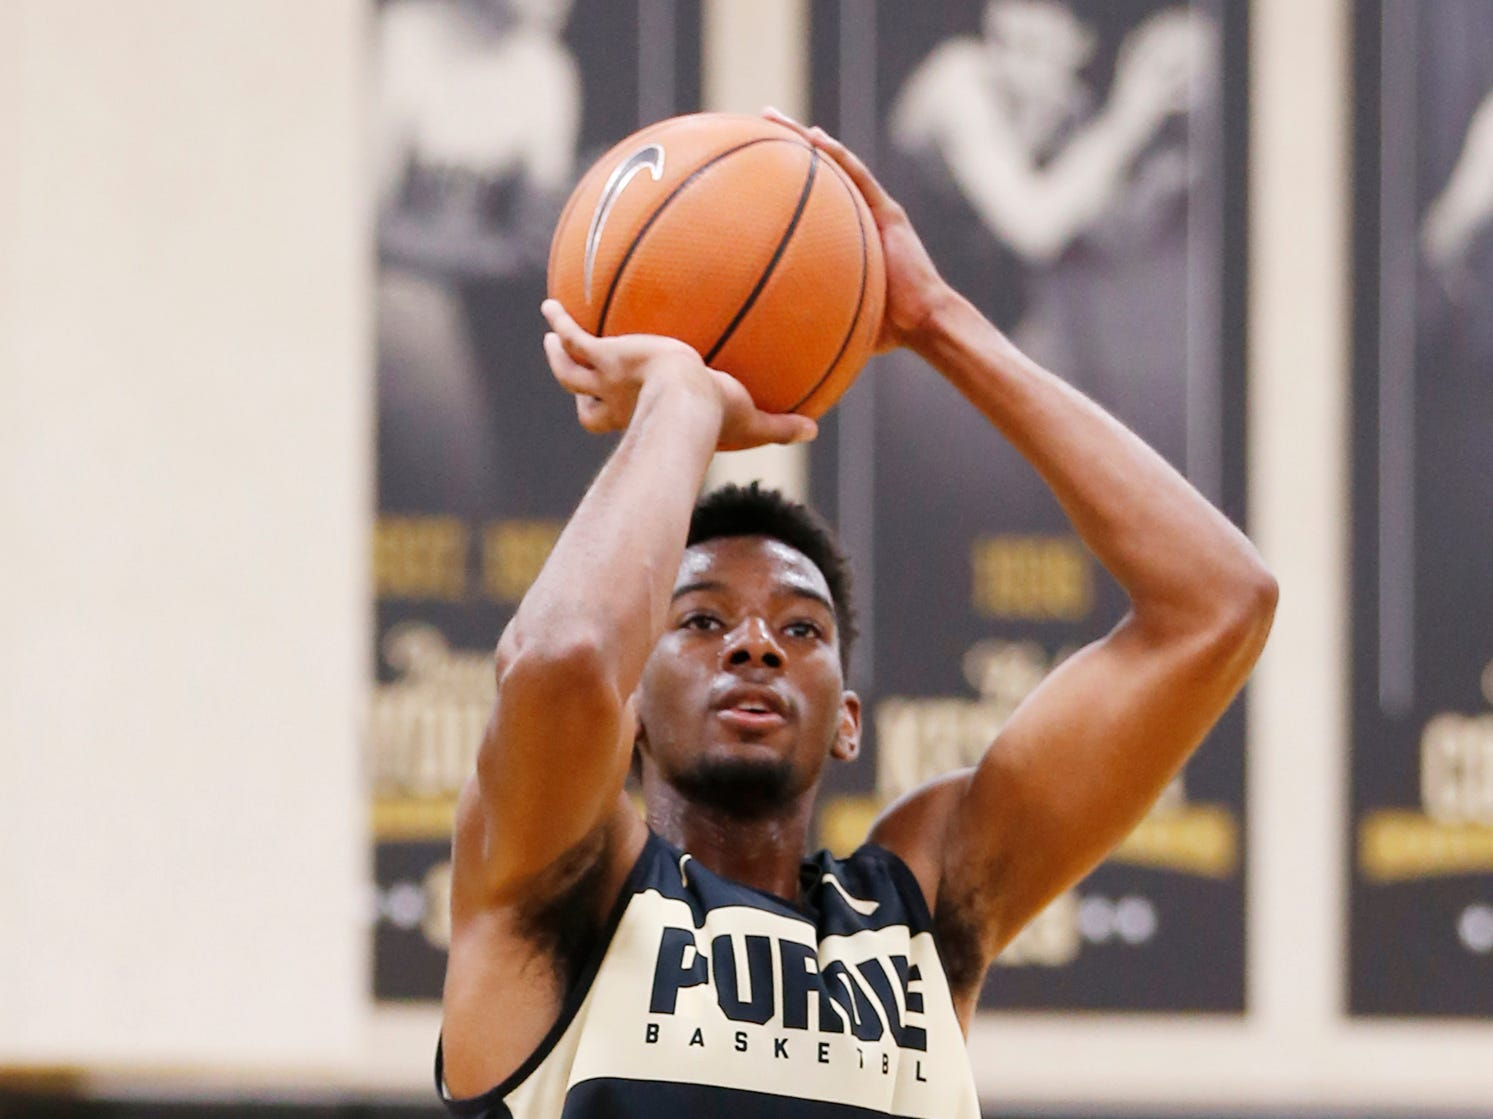 Aaron Wheeler with a shot during the first official practice of the season for Purdue men's basketball Tuesday, September 25, 2018, at Cardinal Court in Mackey Arena.